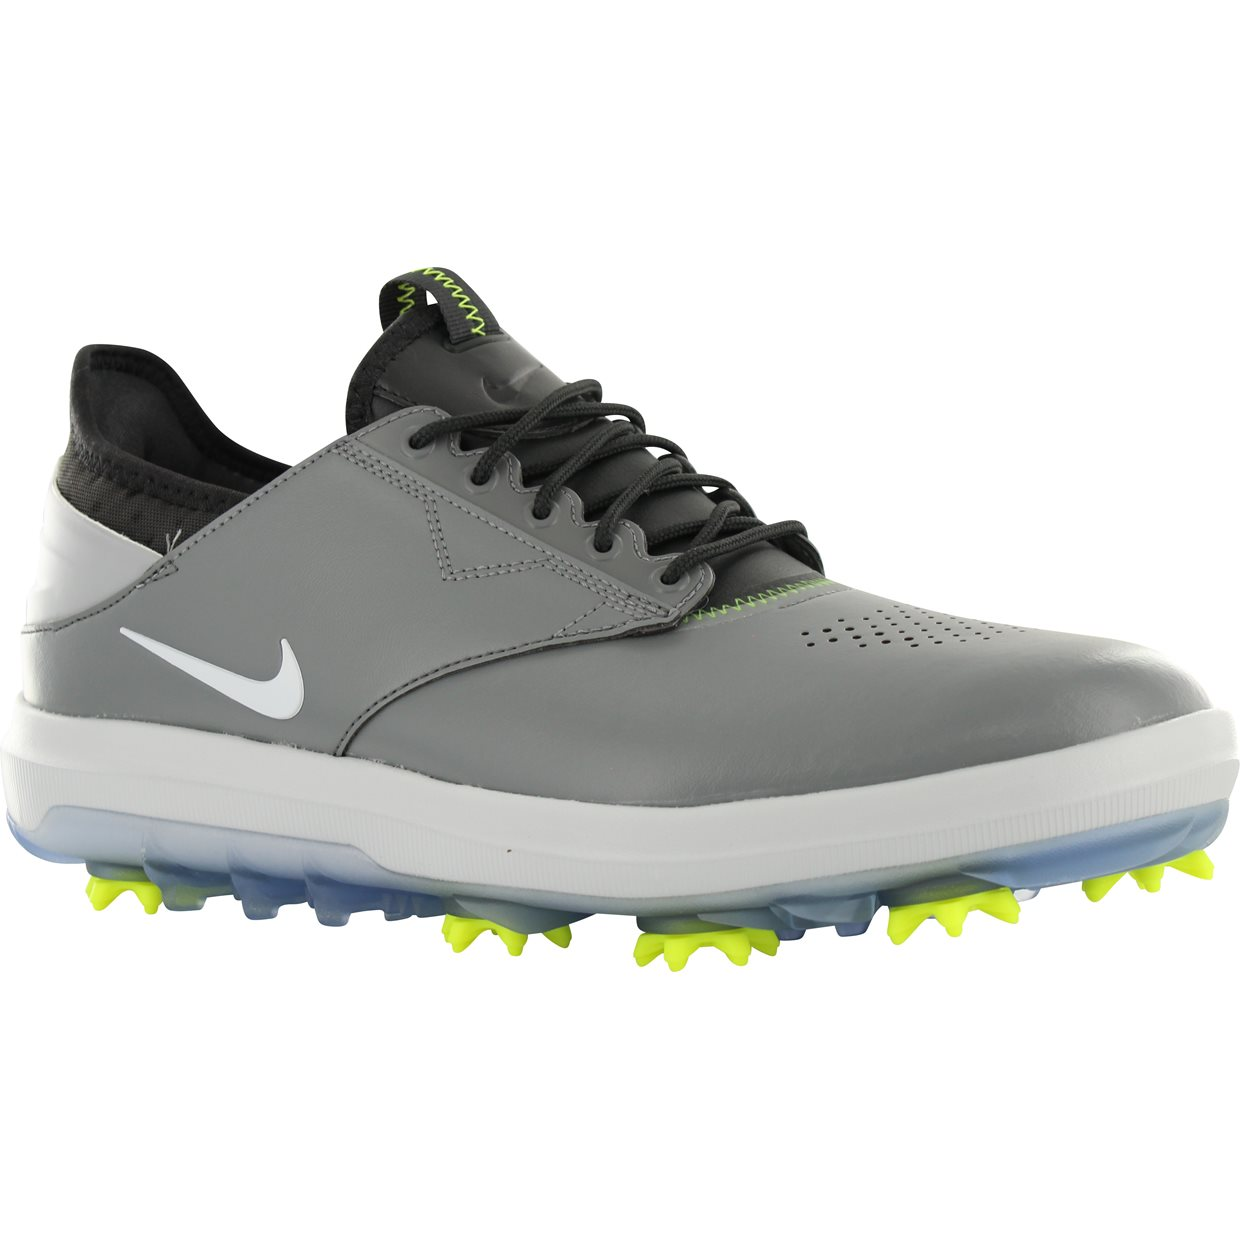 a558b66206a9 Nike Air Zoom Direct Golf Shoes at GlobalGolf.com